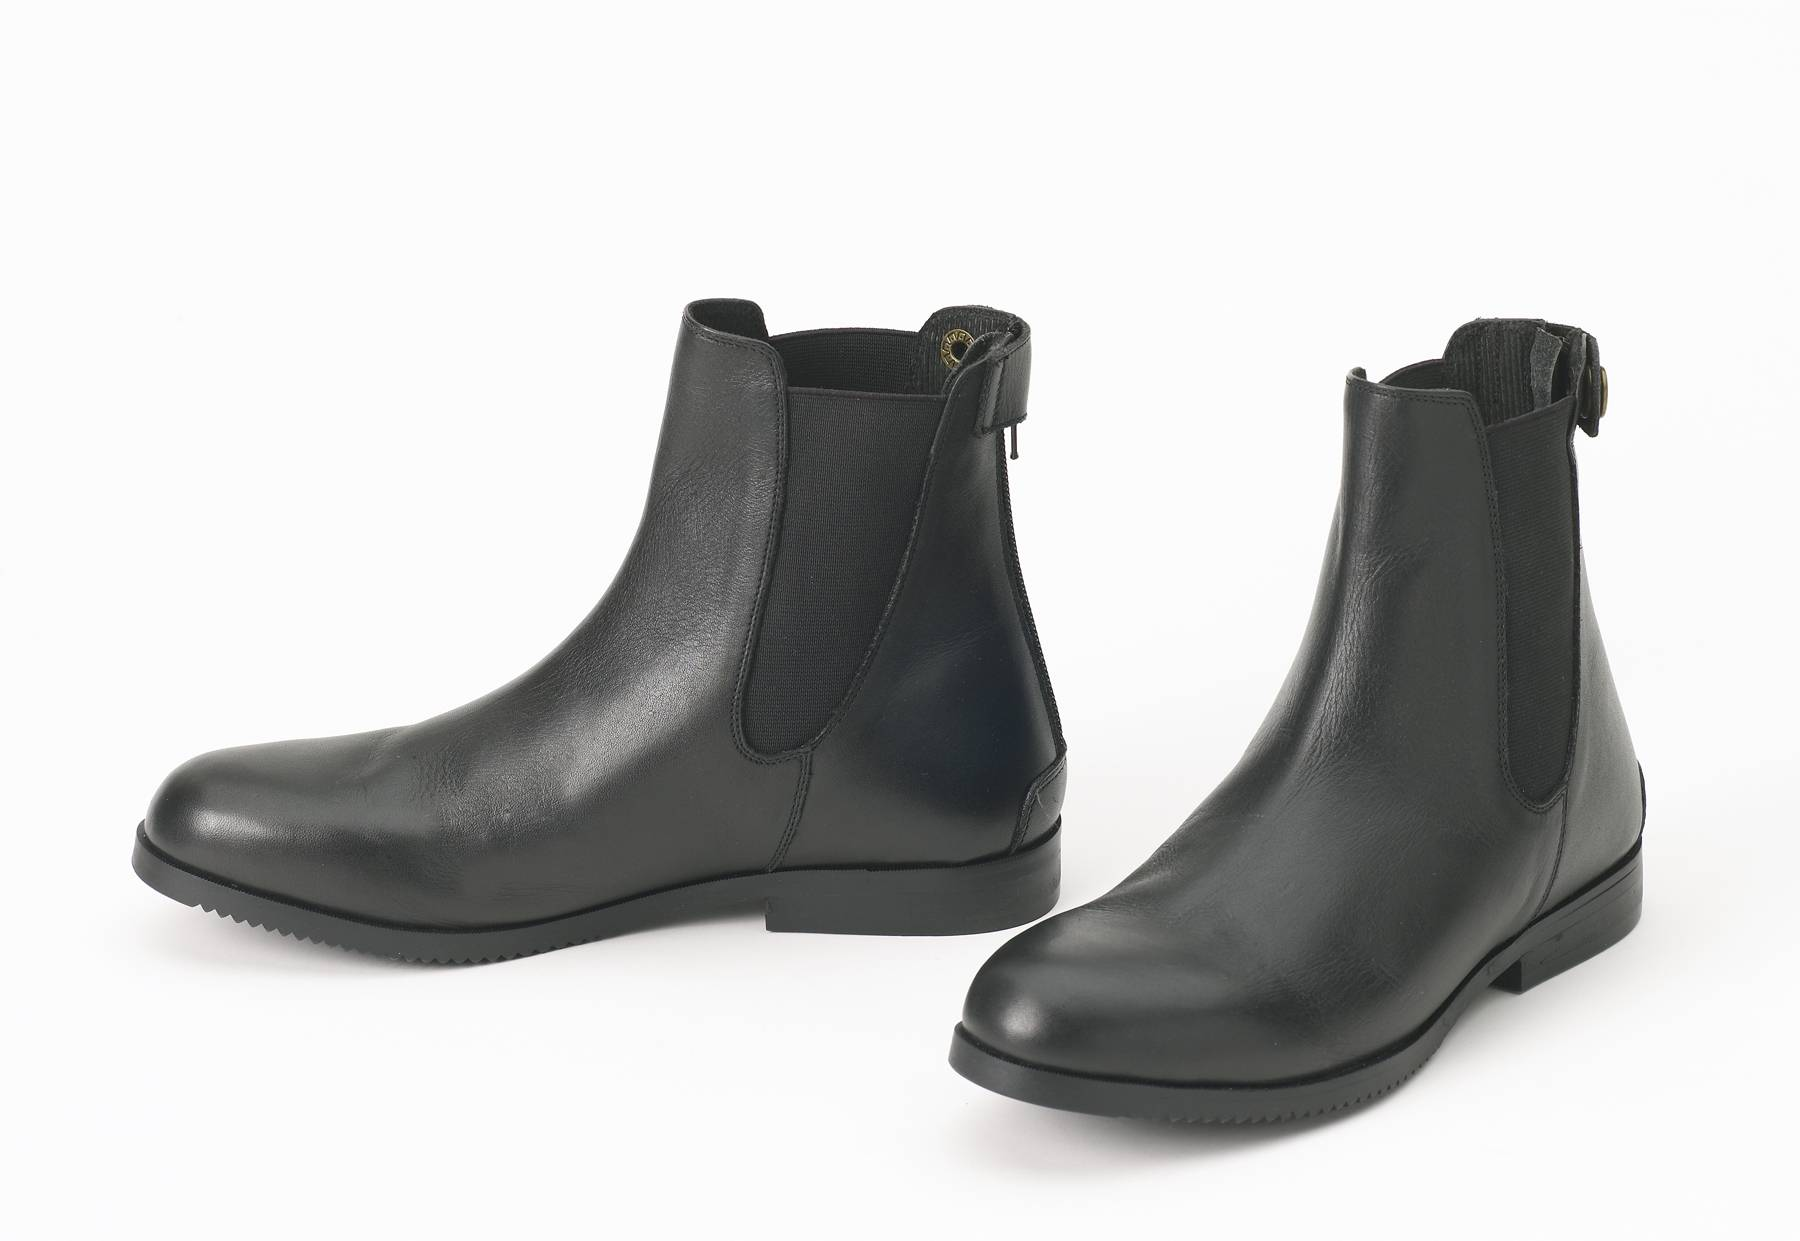 Ovation Gold Circuit Show Jod Boots